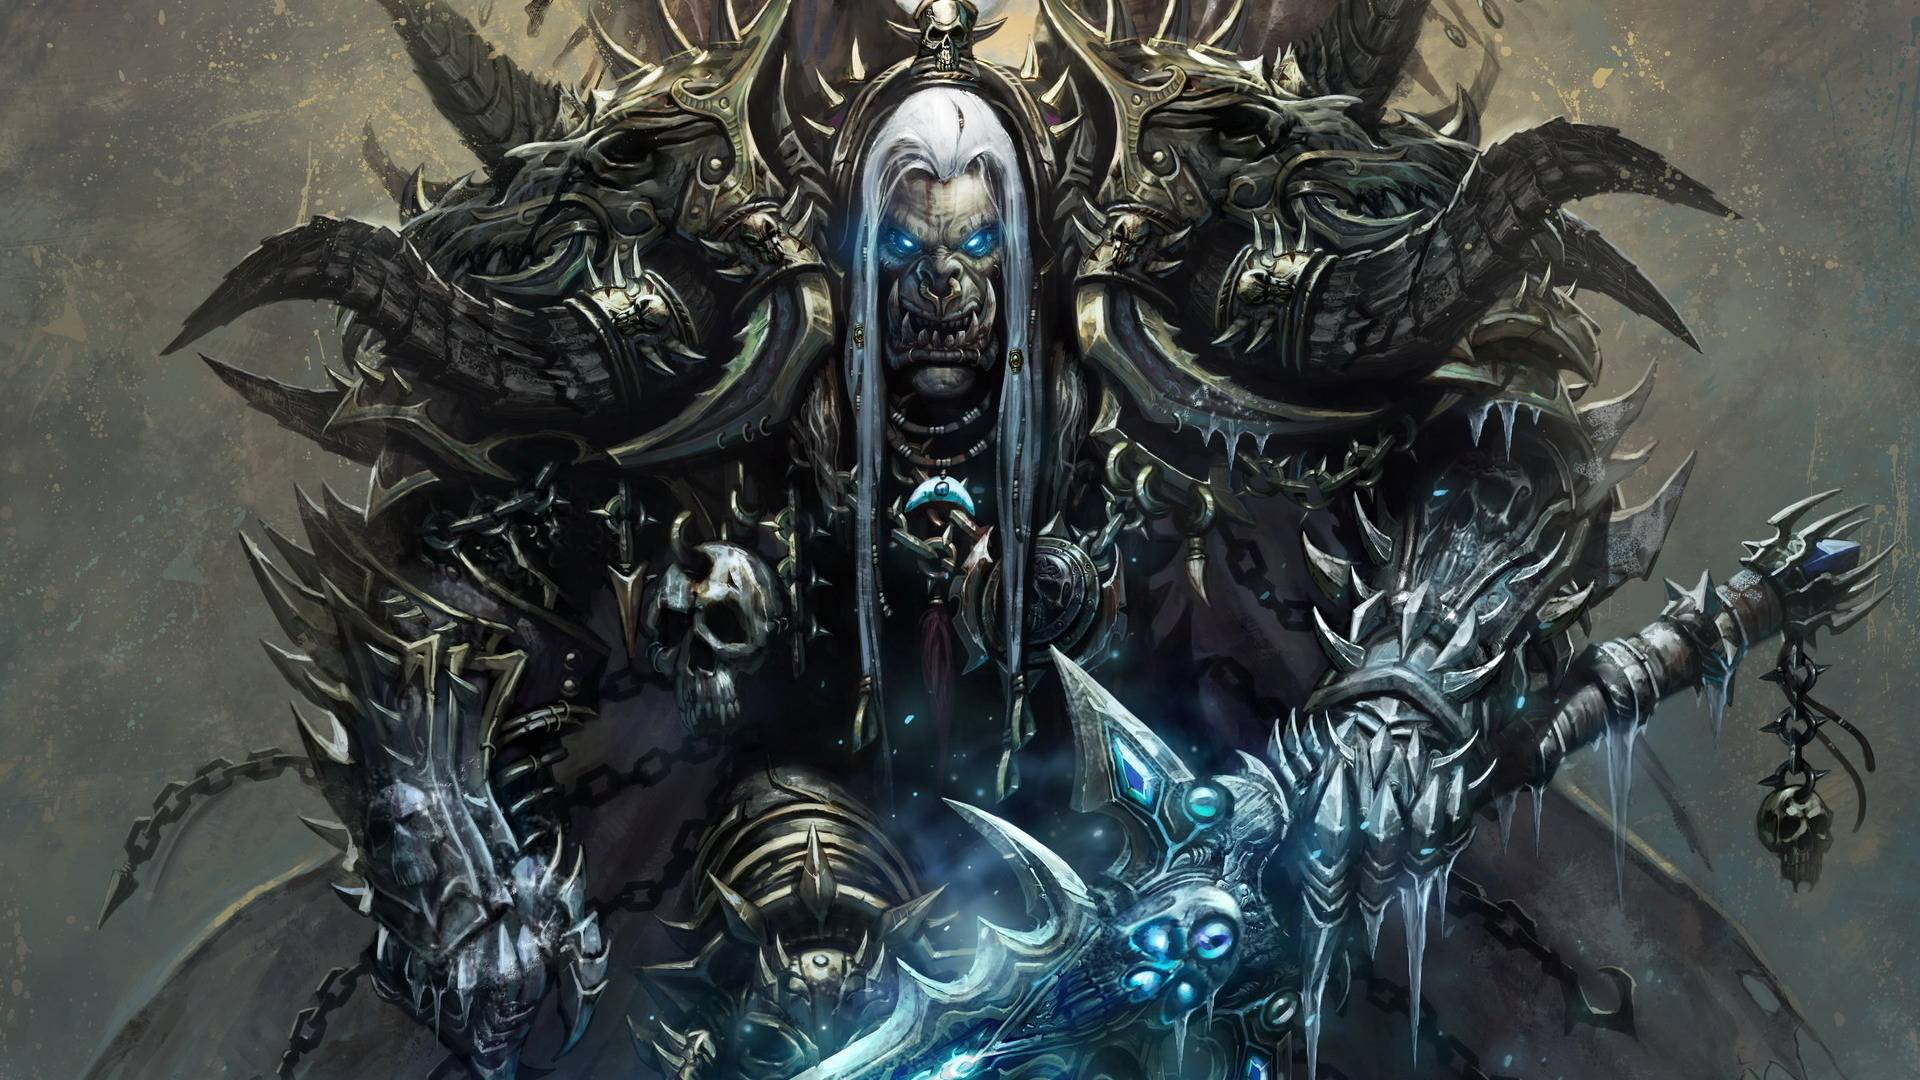 World Of Warcraft Wallpaper Cool World Of Warcraft 152838 Hd Wallpaper Backgrounds Download